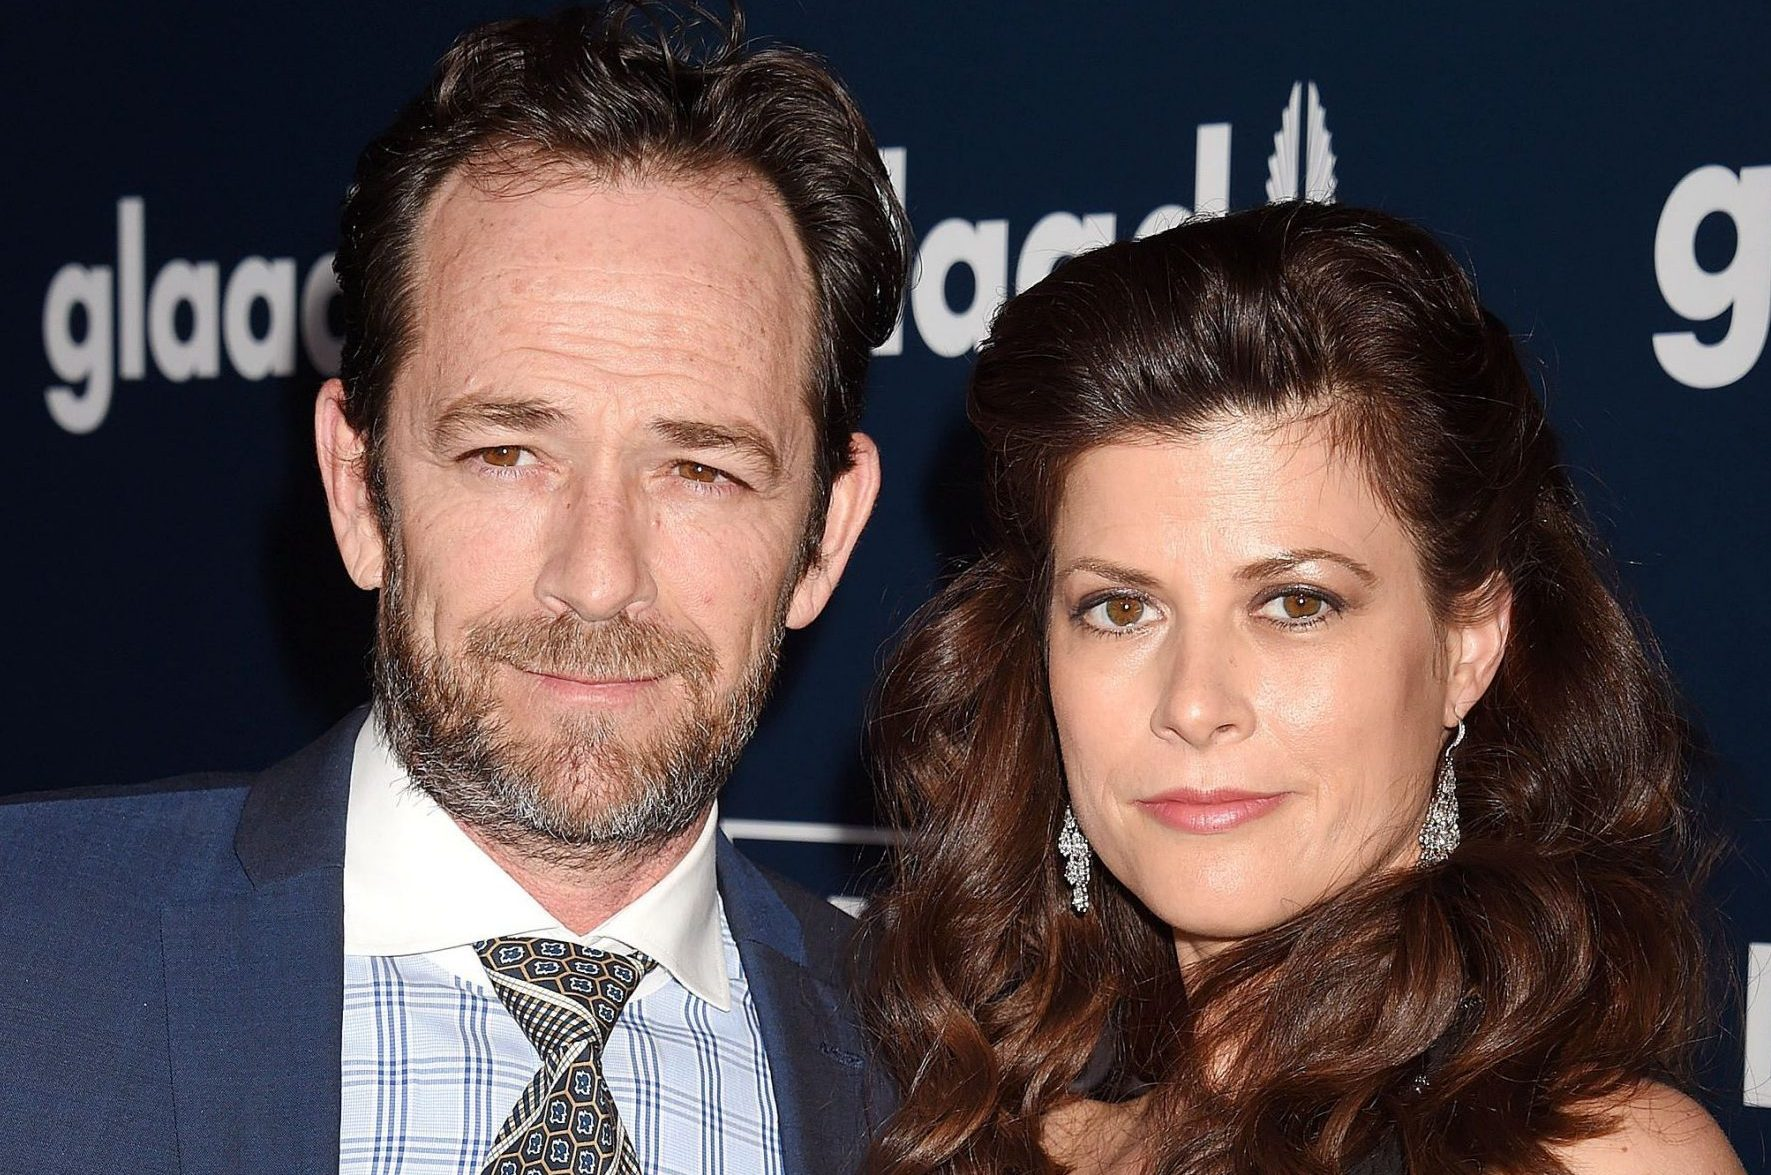 Luke Perry's fiancé speaks out on 90210 star's death: 'Our lives were touched by an extraordinary man'